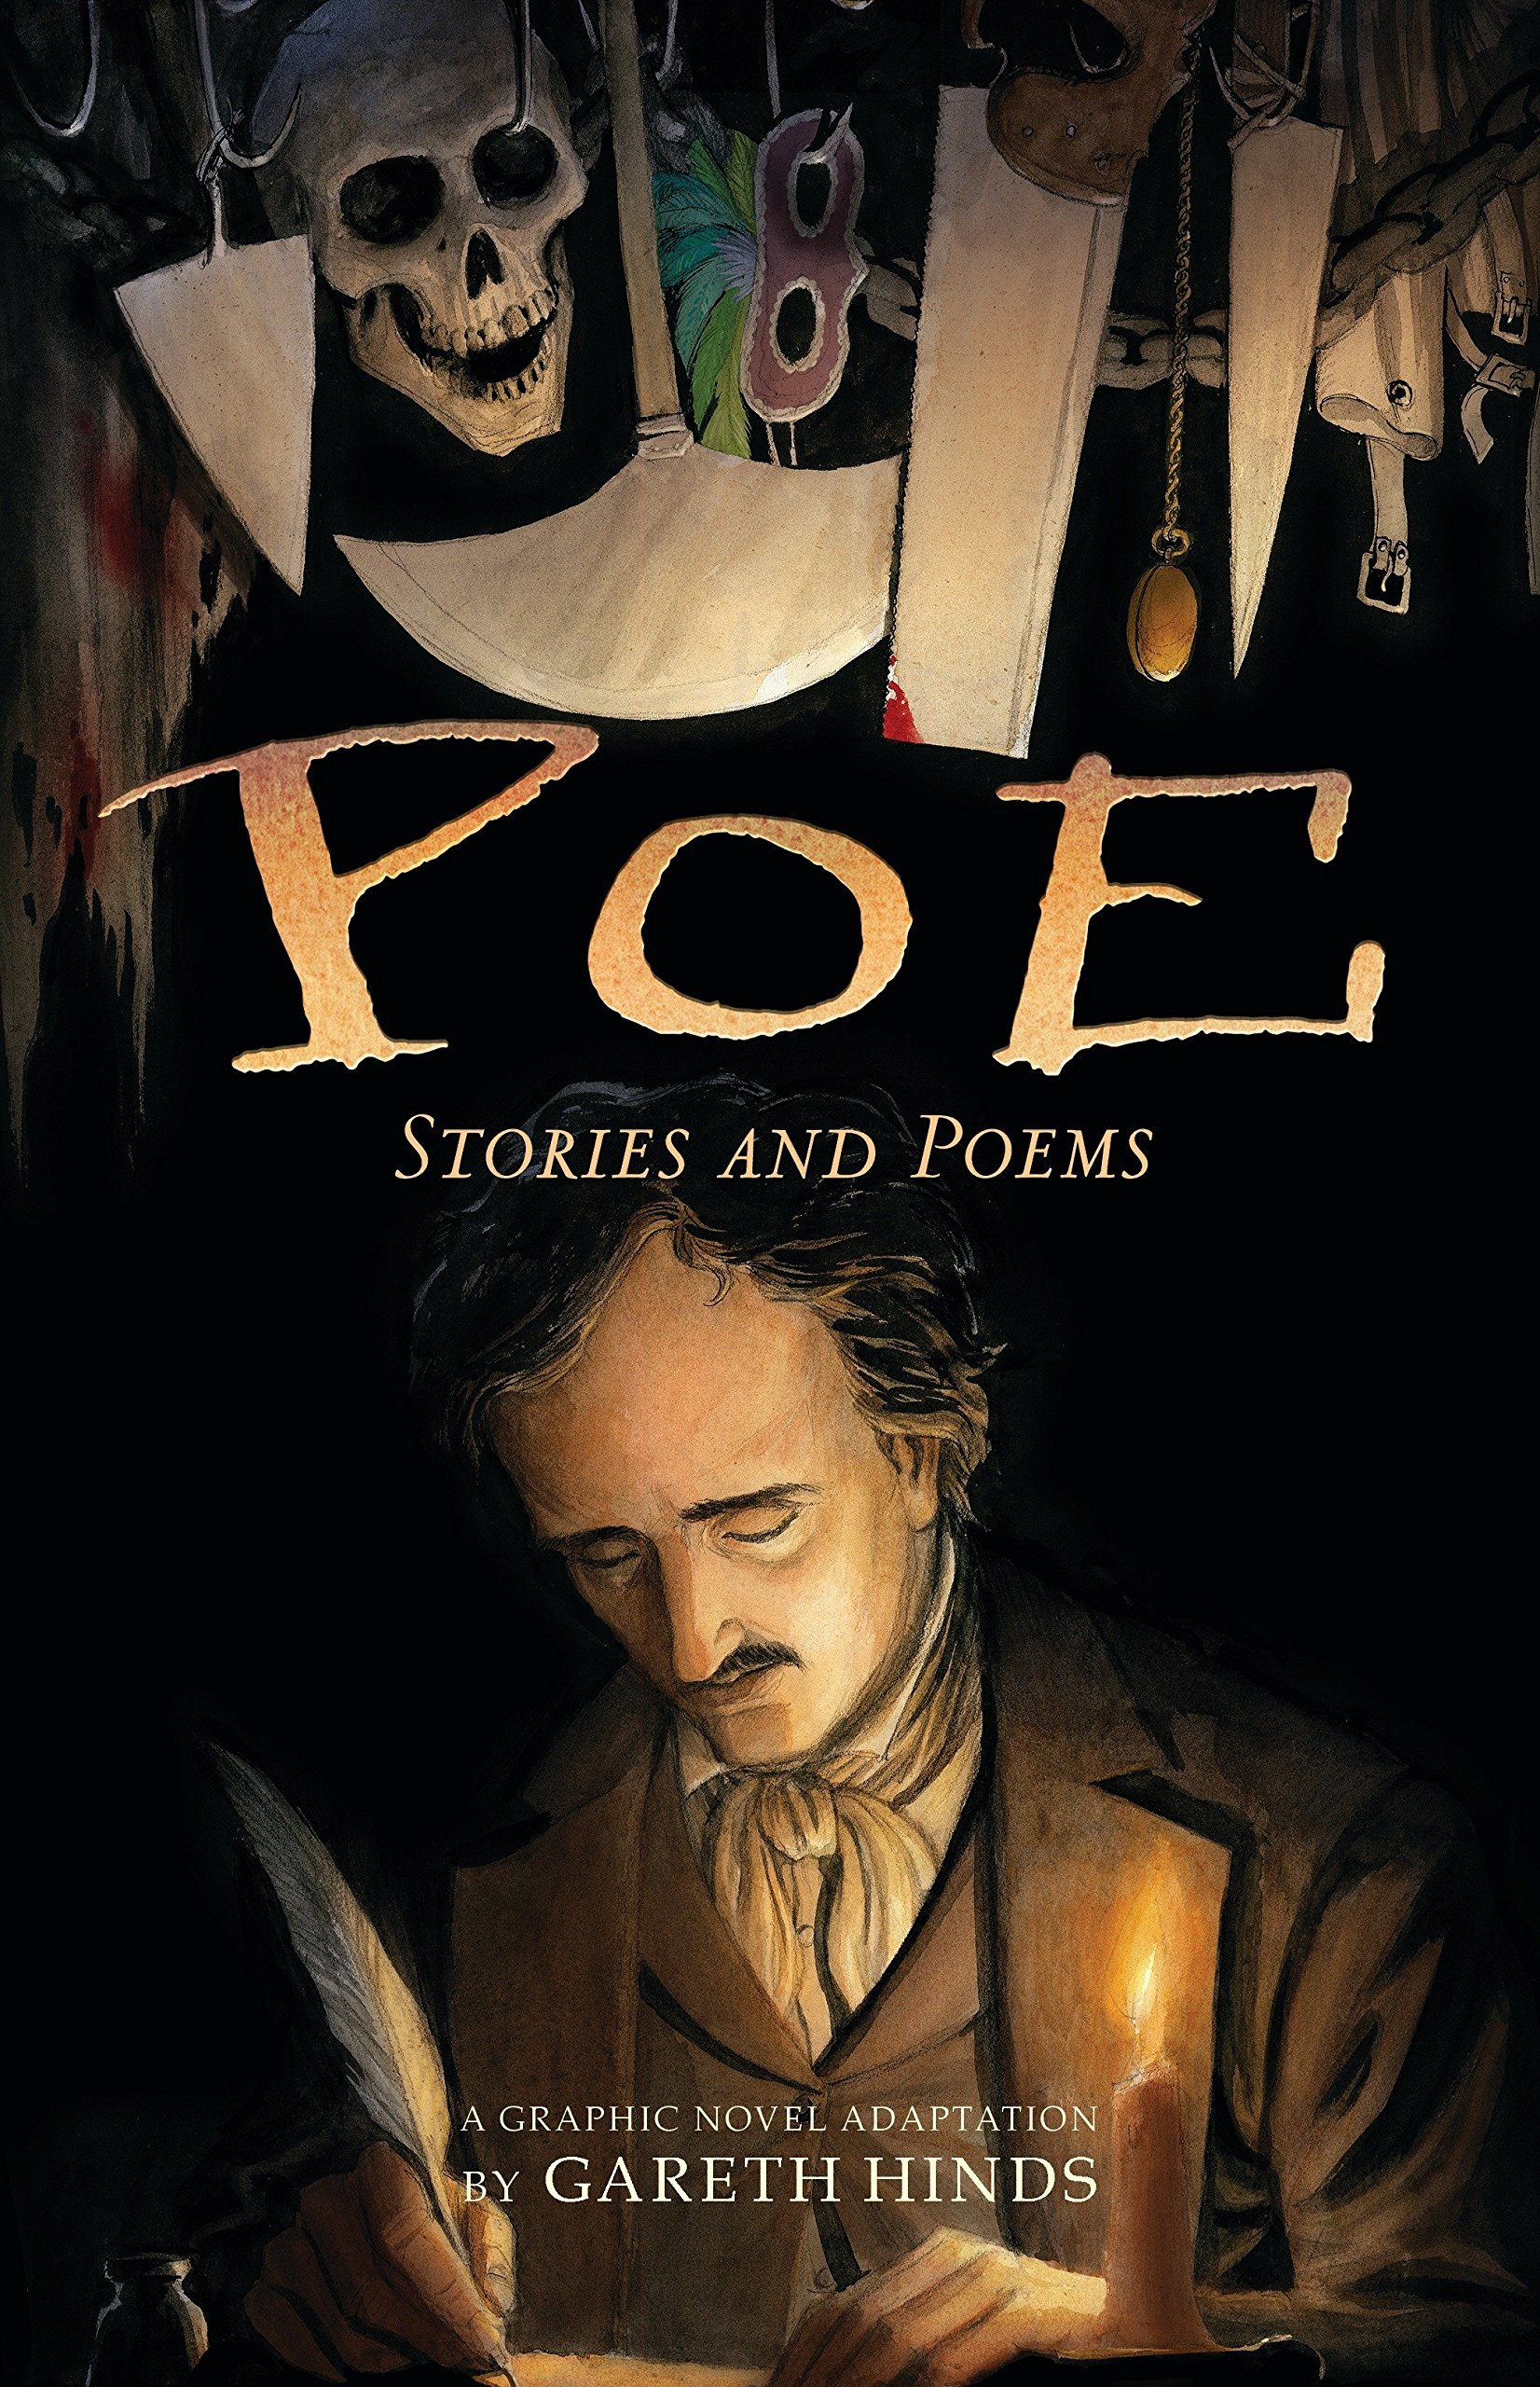 Poe: Stories and Poems: A Graphic Novel Adaptation by Gareth Hinds ebook